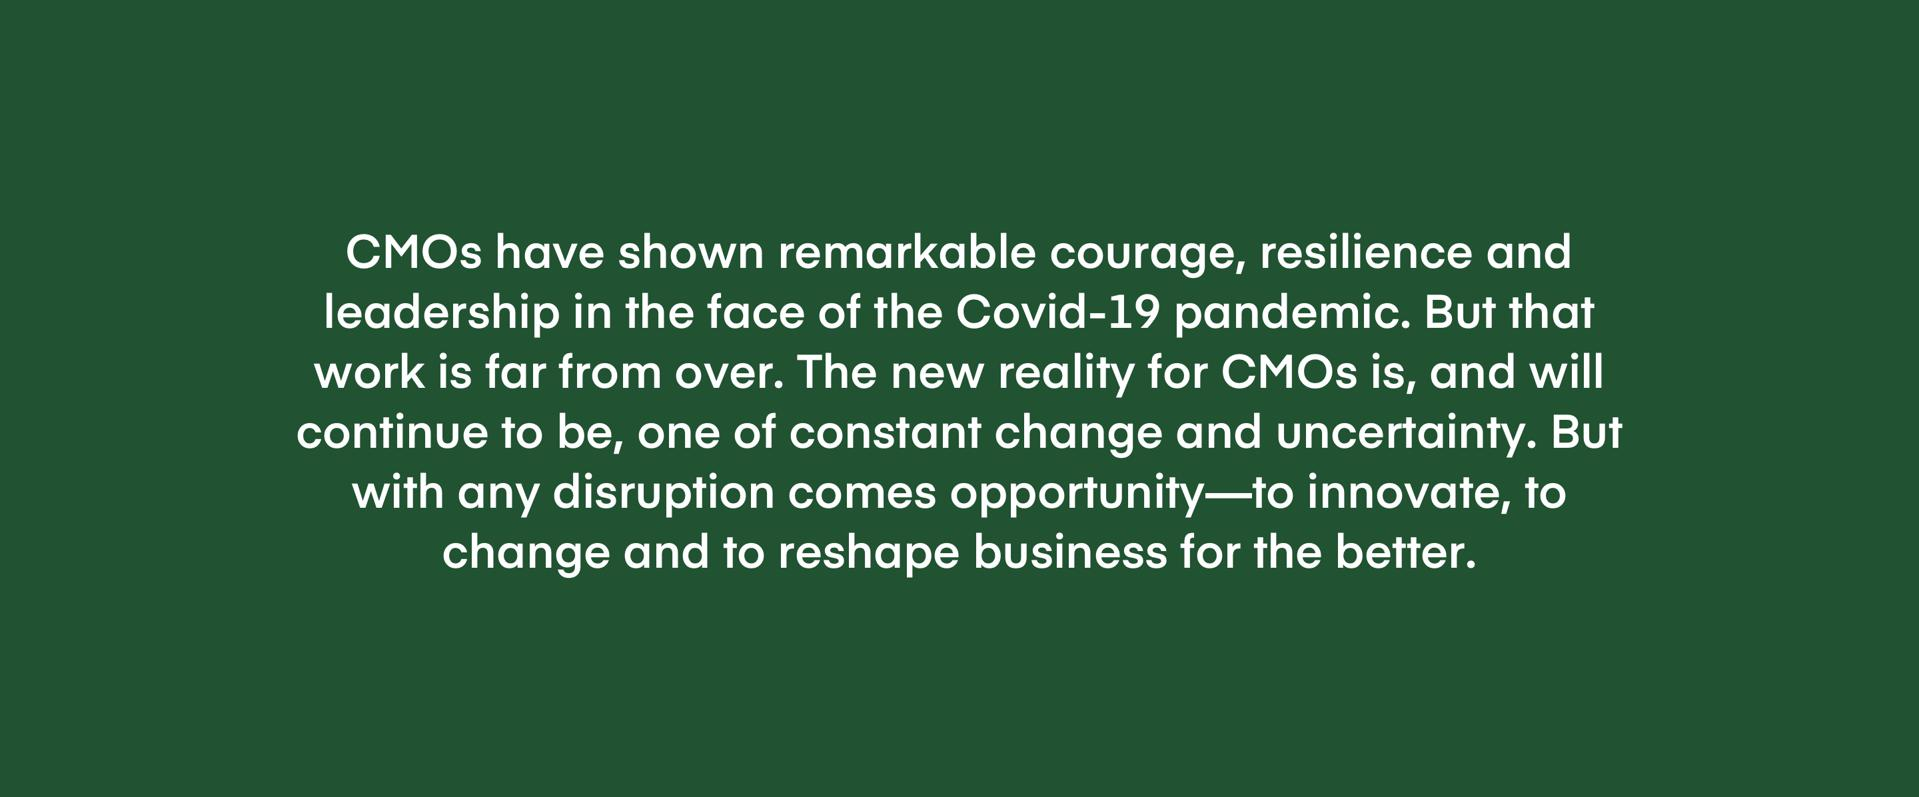 CMOs have shown remarkable courage, resilience and leadership in the face of the Covid-19 pandemic. But that work is far from over. The new reality for CMOs is, and will continue to be, one of constant change and uncertainty. But with any disruption comes opportunity—to innovate, to change and to reshape business for the better.